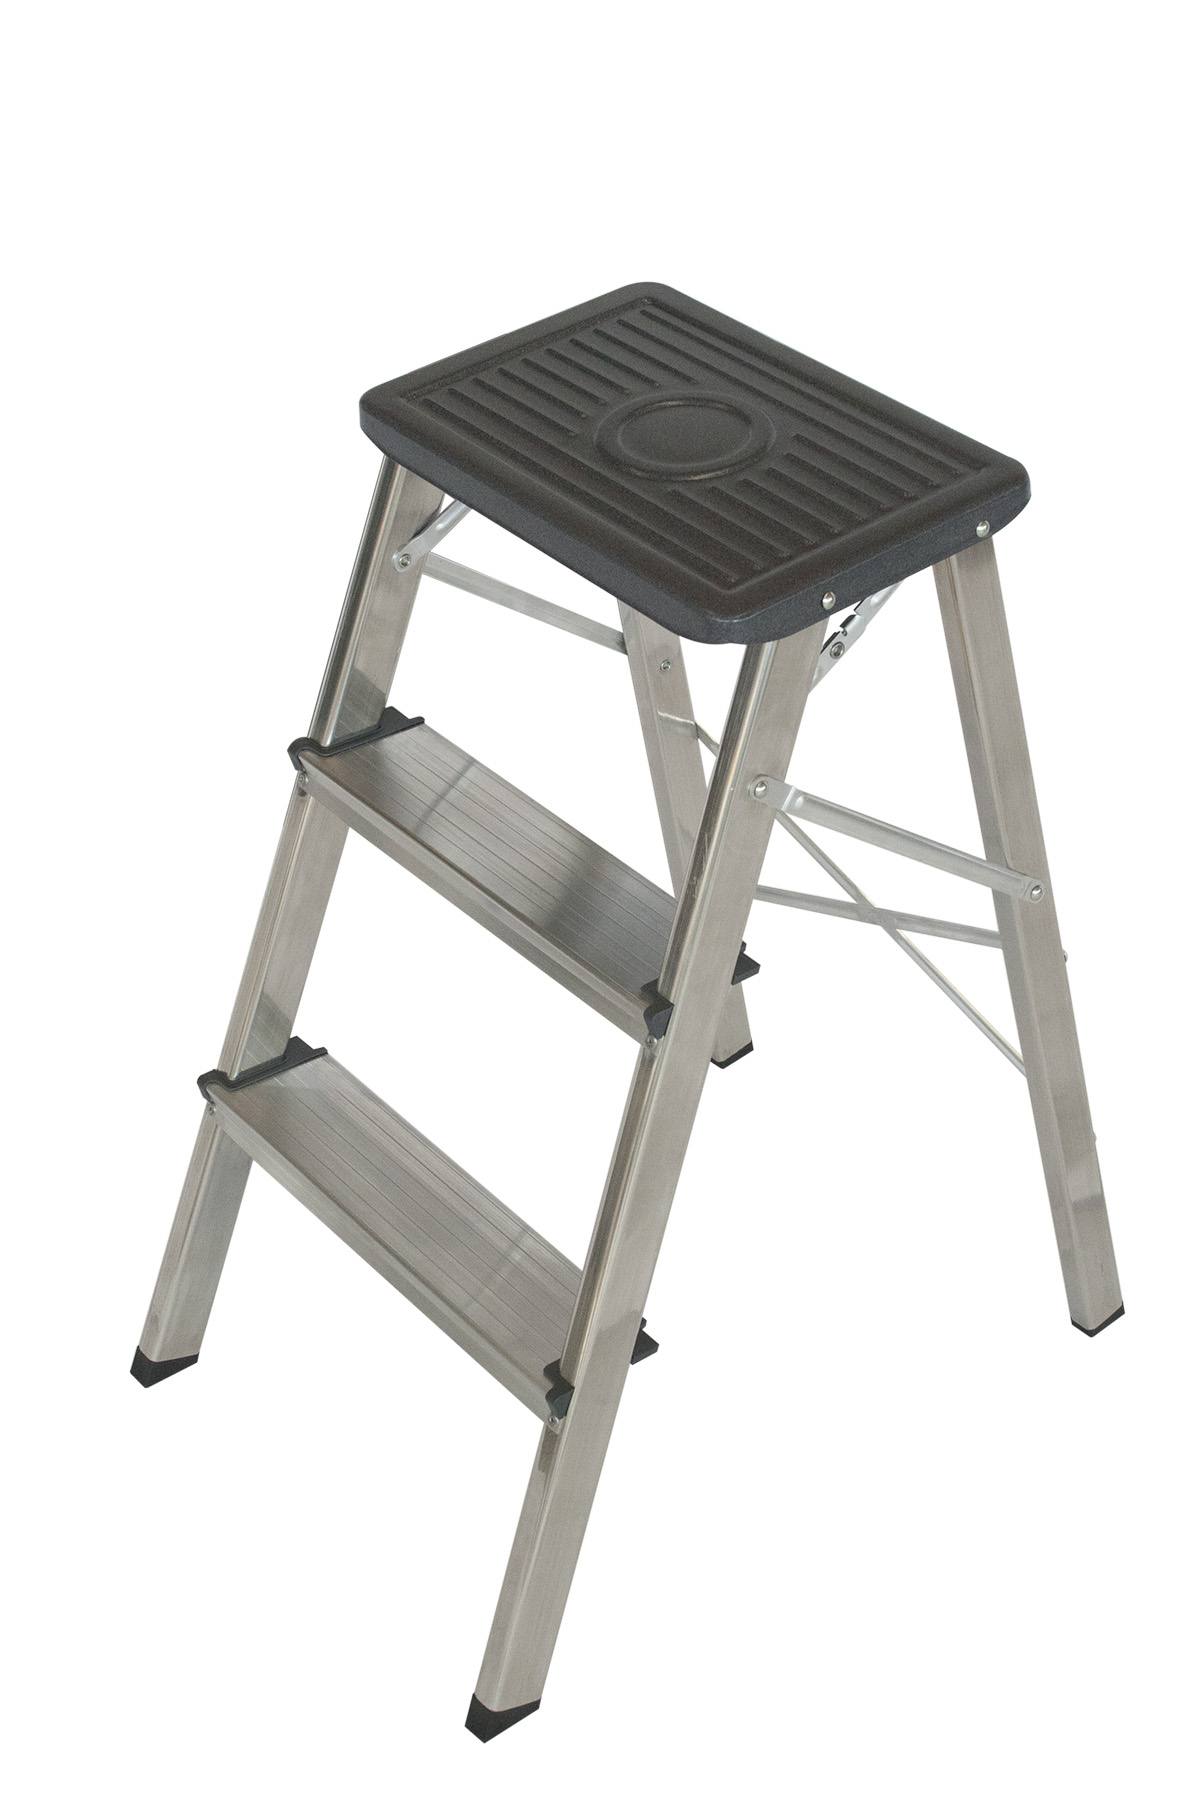 escalera de aluminio advanced Taburete plegable K-OFFICE taburete koffice